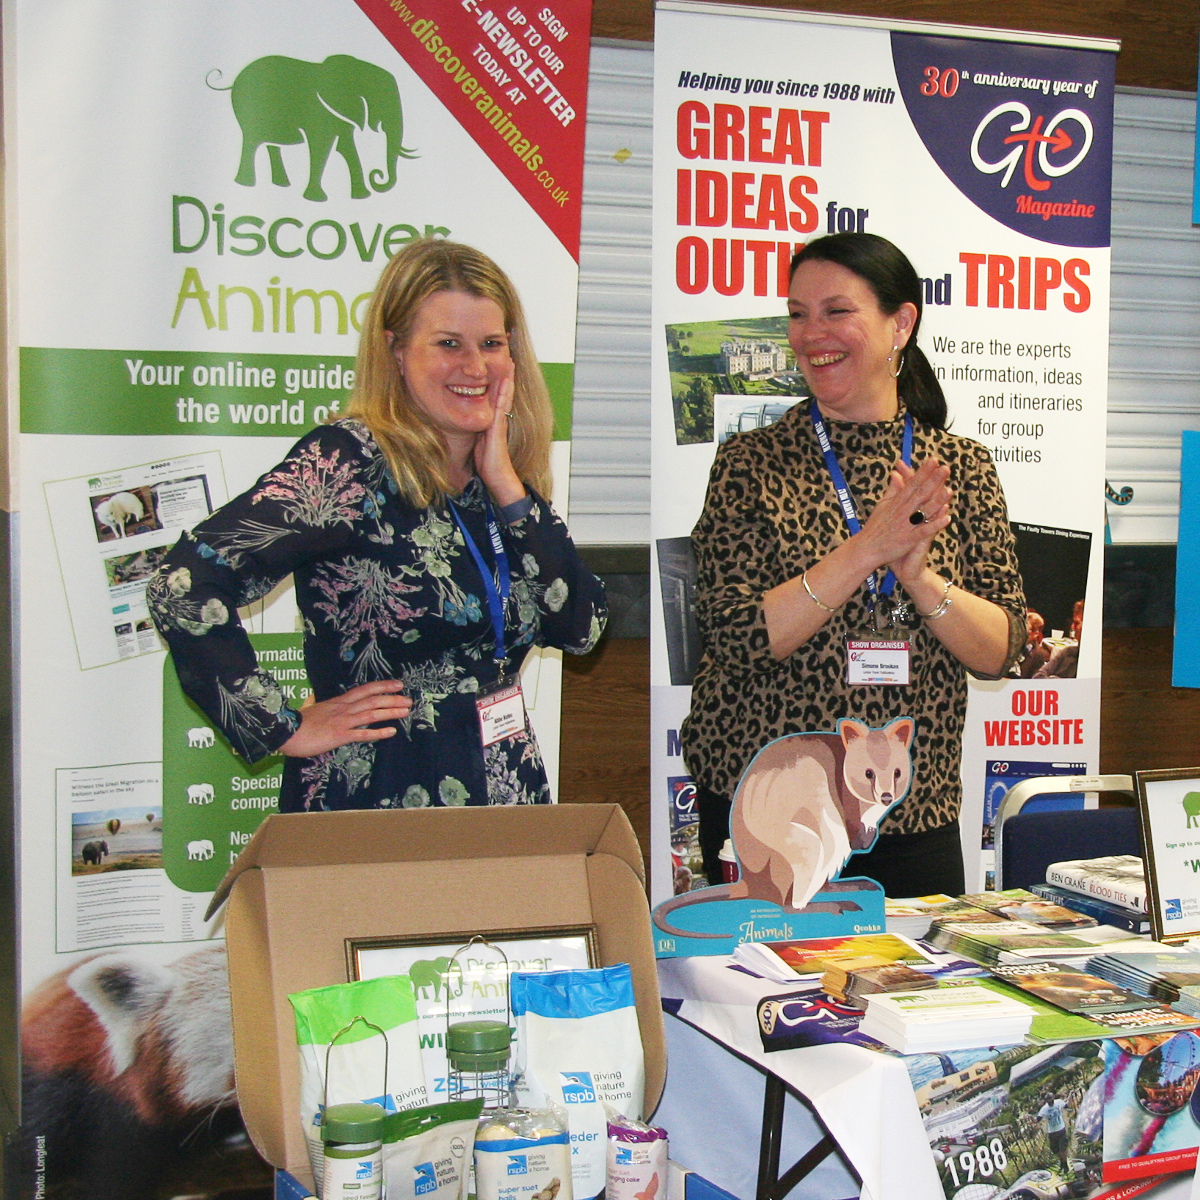 Both Abbe Bates and Simone Brookes do a wonderful job looking after the 'Discover Animals' stand, so come and say hi!